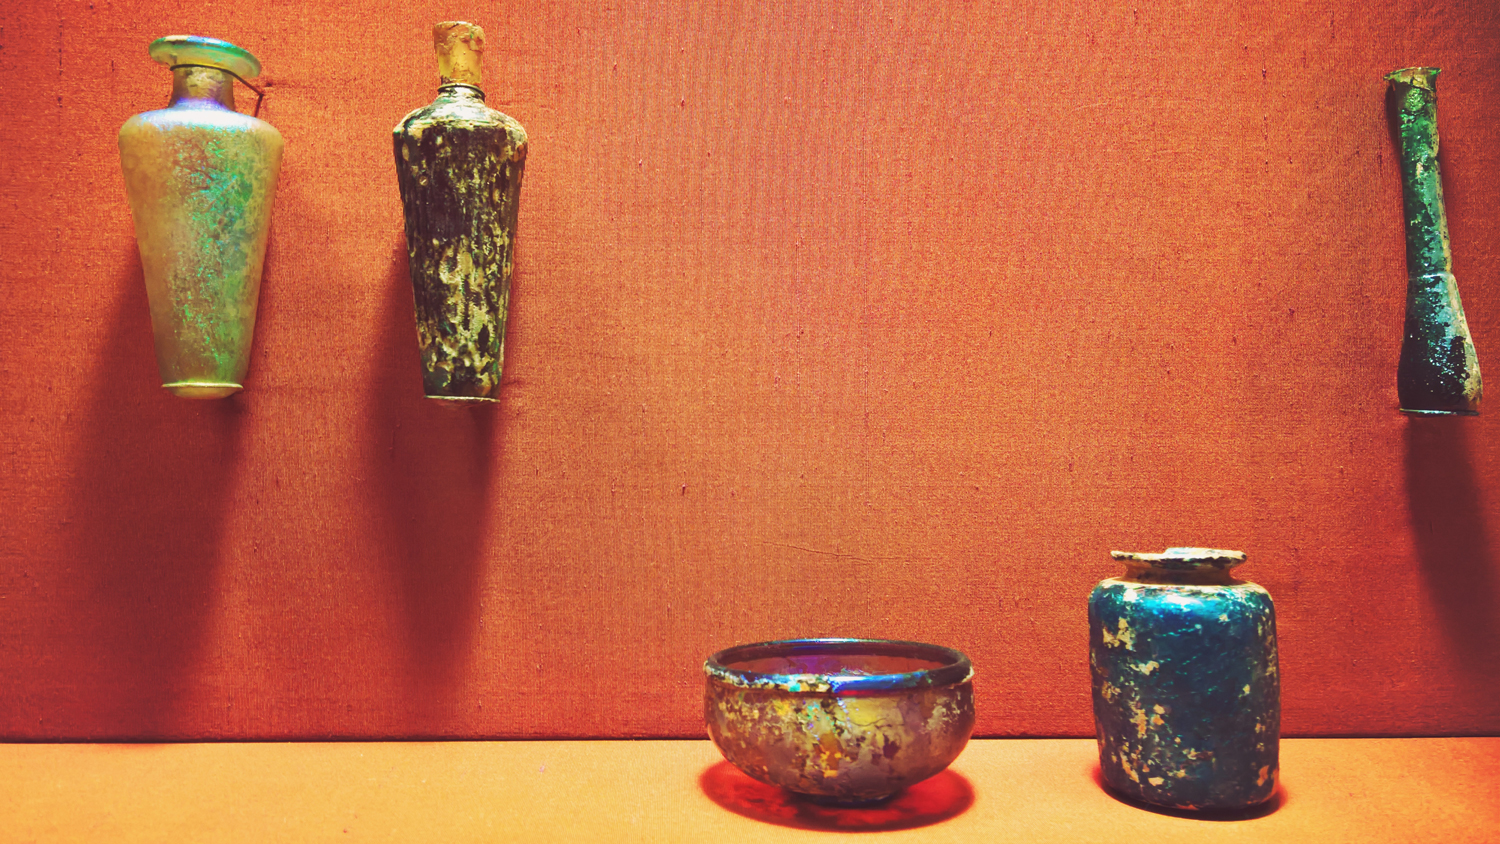 Ancient Blown Glass Vases at The Metropolitan Museum of Art, NYC | OMventure.com